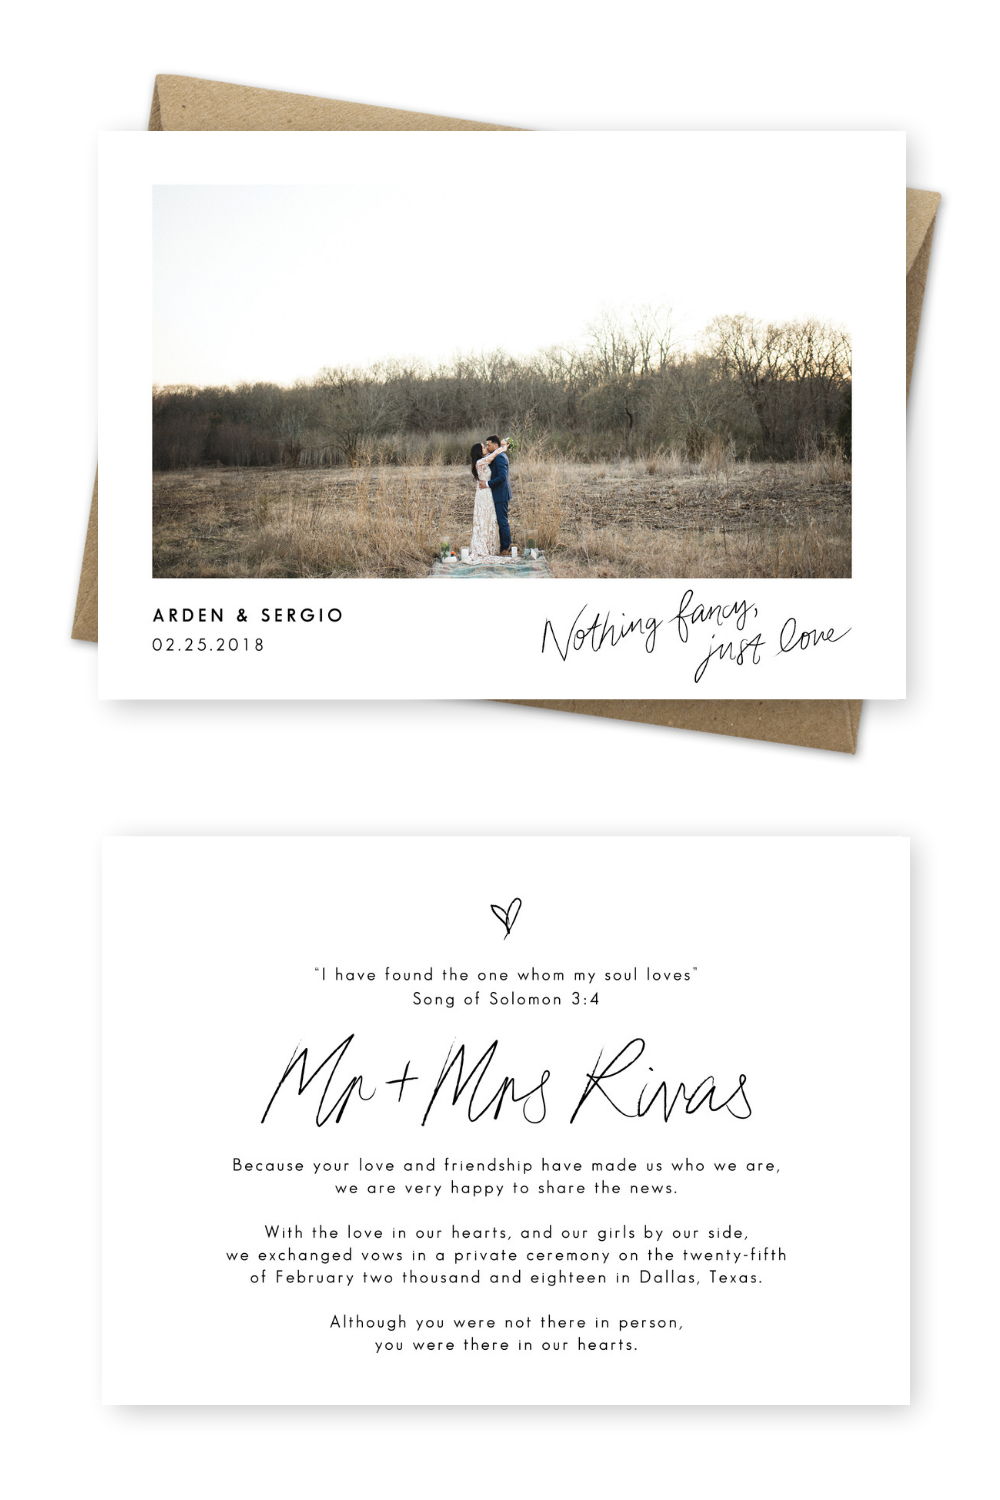 9 Gorgeous Wedding Announcement Cards And Elopement Invitation Ideas Wedding Announcement Cards Elopement Invitation Marriage Announcement